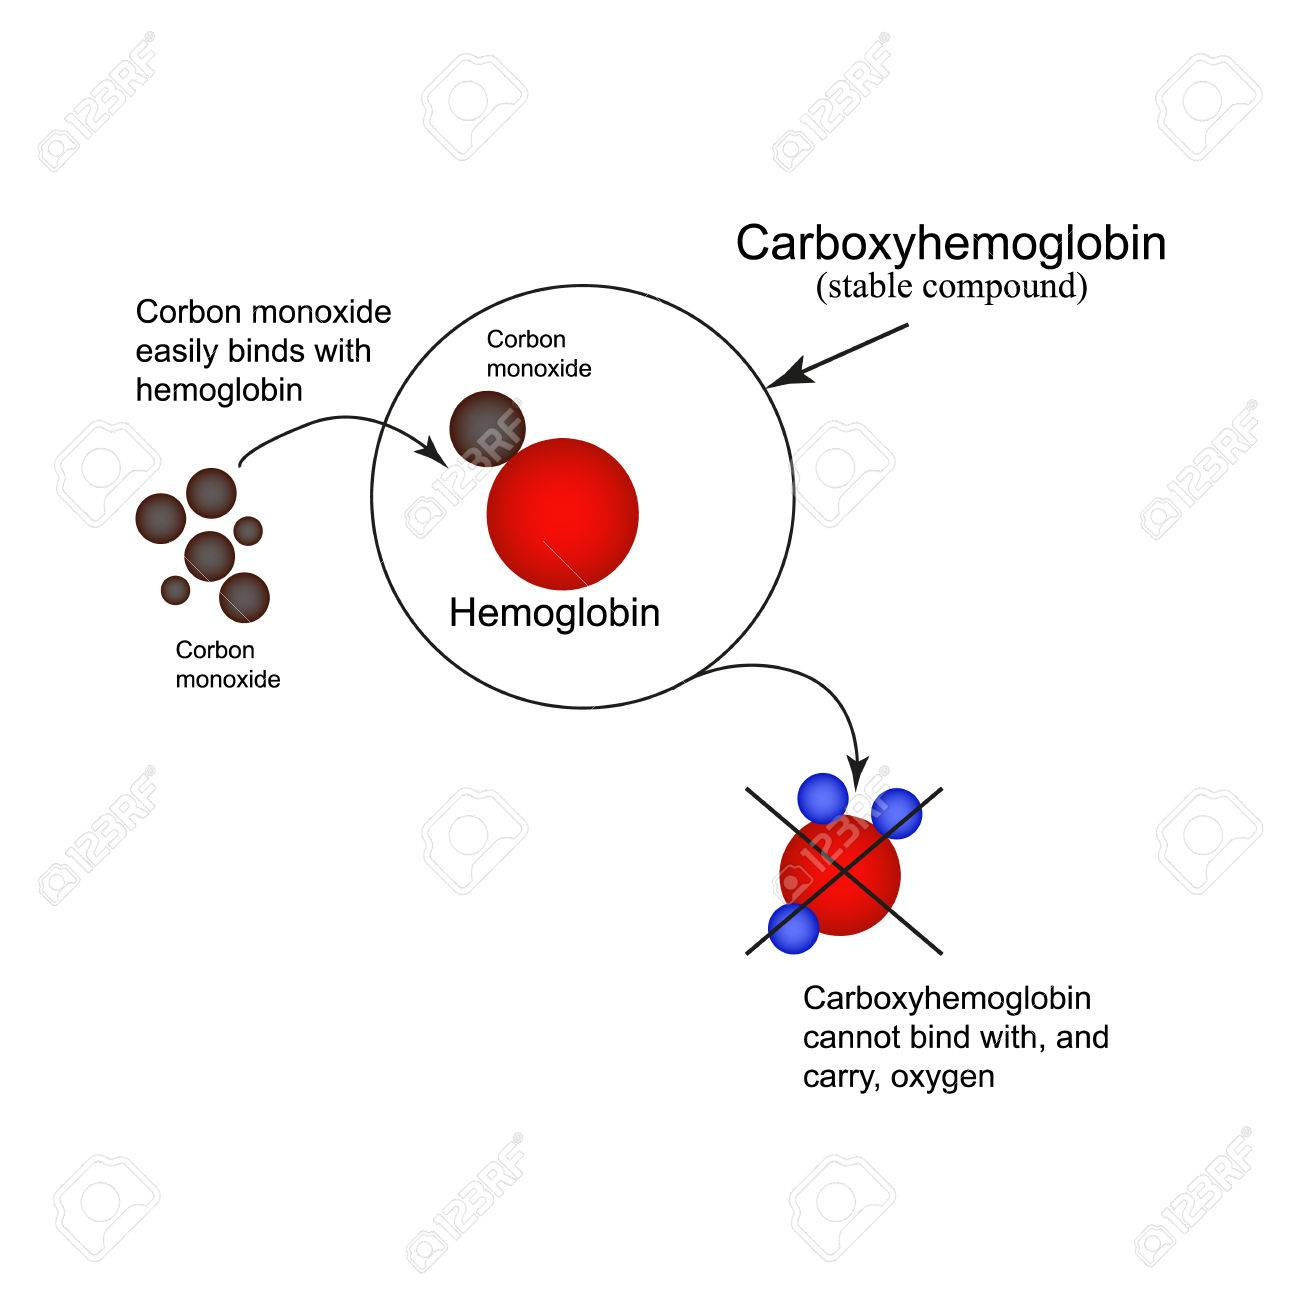 Carboxyhemoglobin joining the hemoglobin carbon monoxide the joining the hemoglobin carbon monoxide the inability to transport oxygen carbon monoxide pooptronica Images